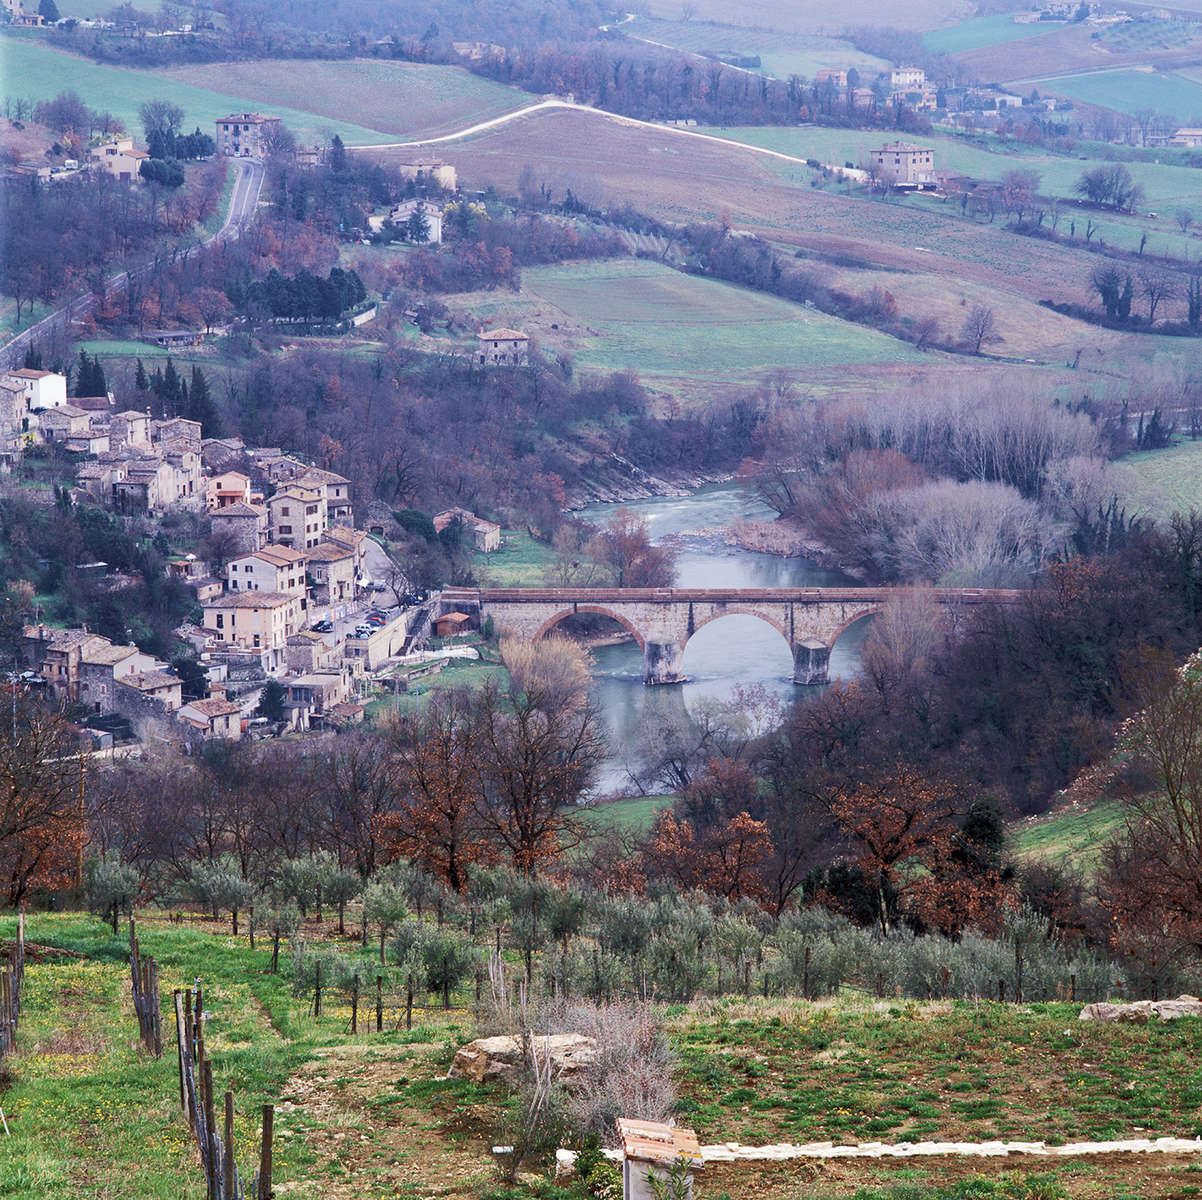 Umbria, ItalyImage No: 05-050034   Click HERE to Add to Cart